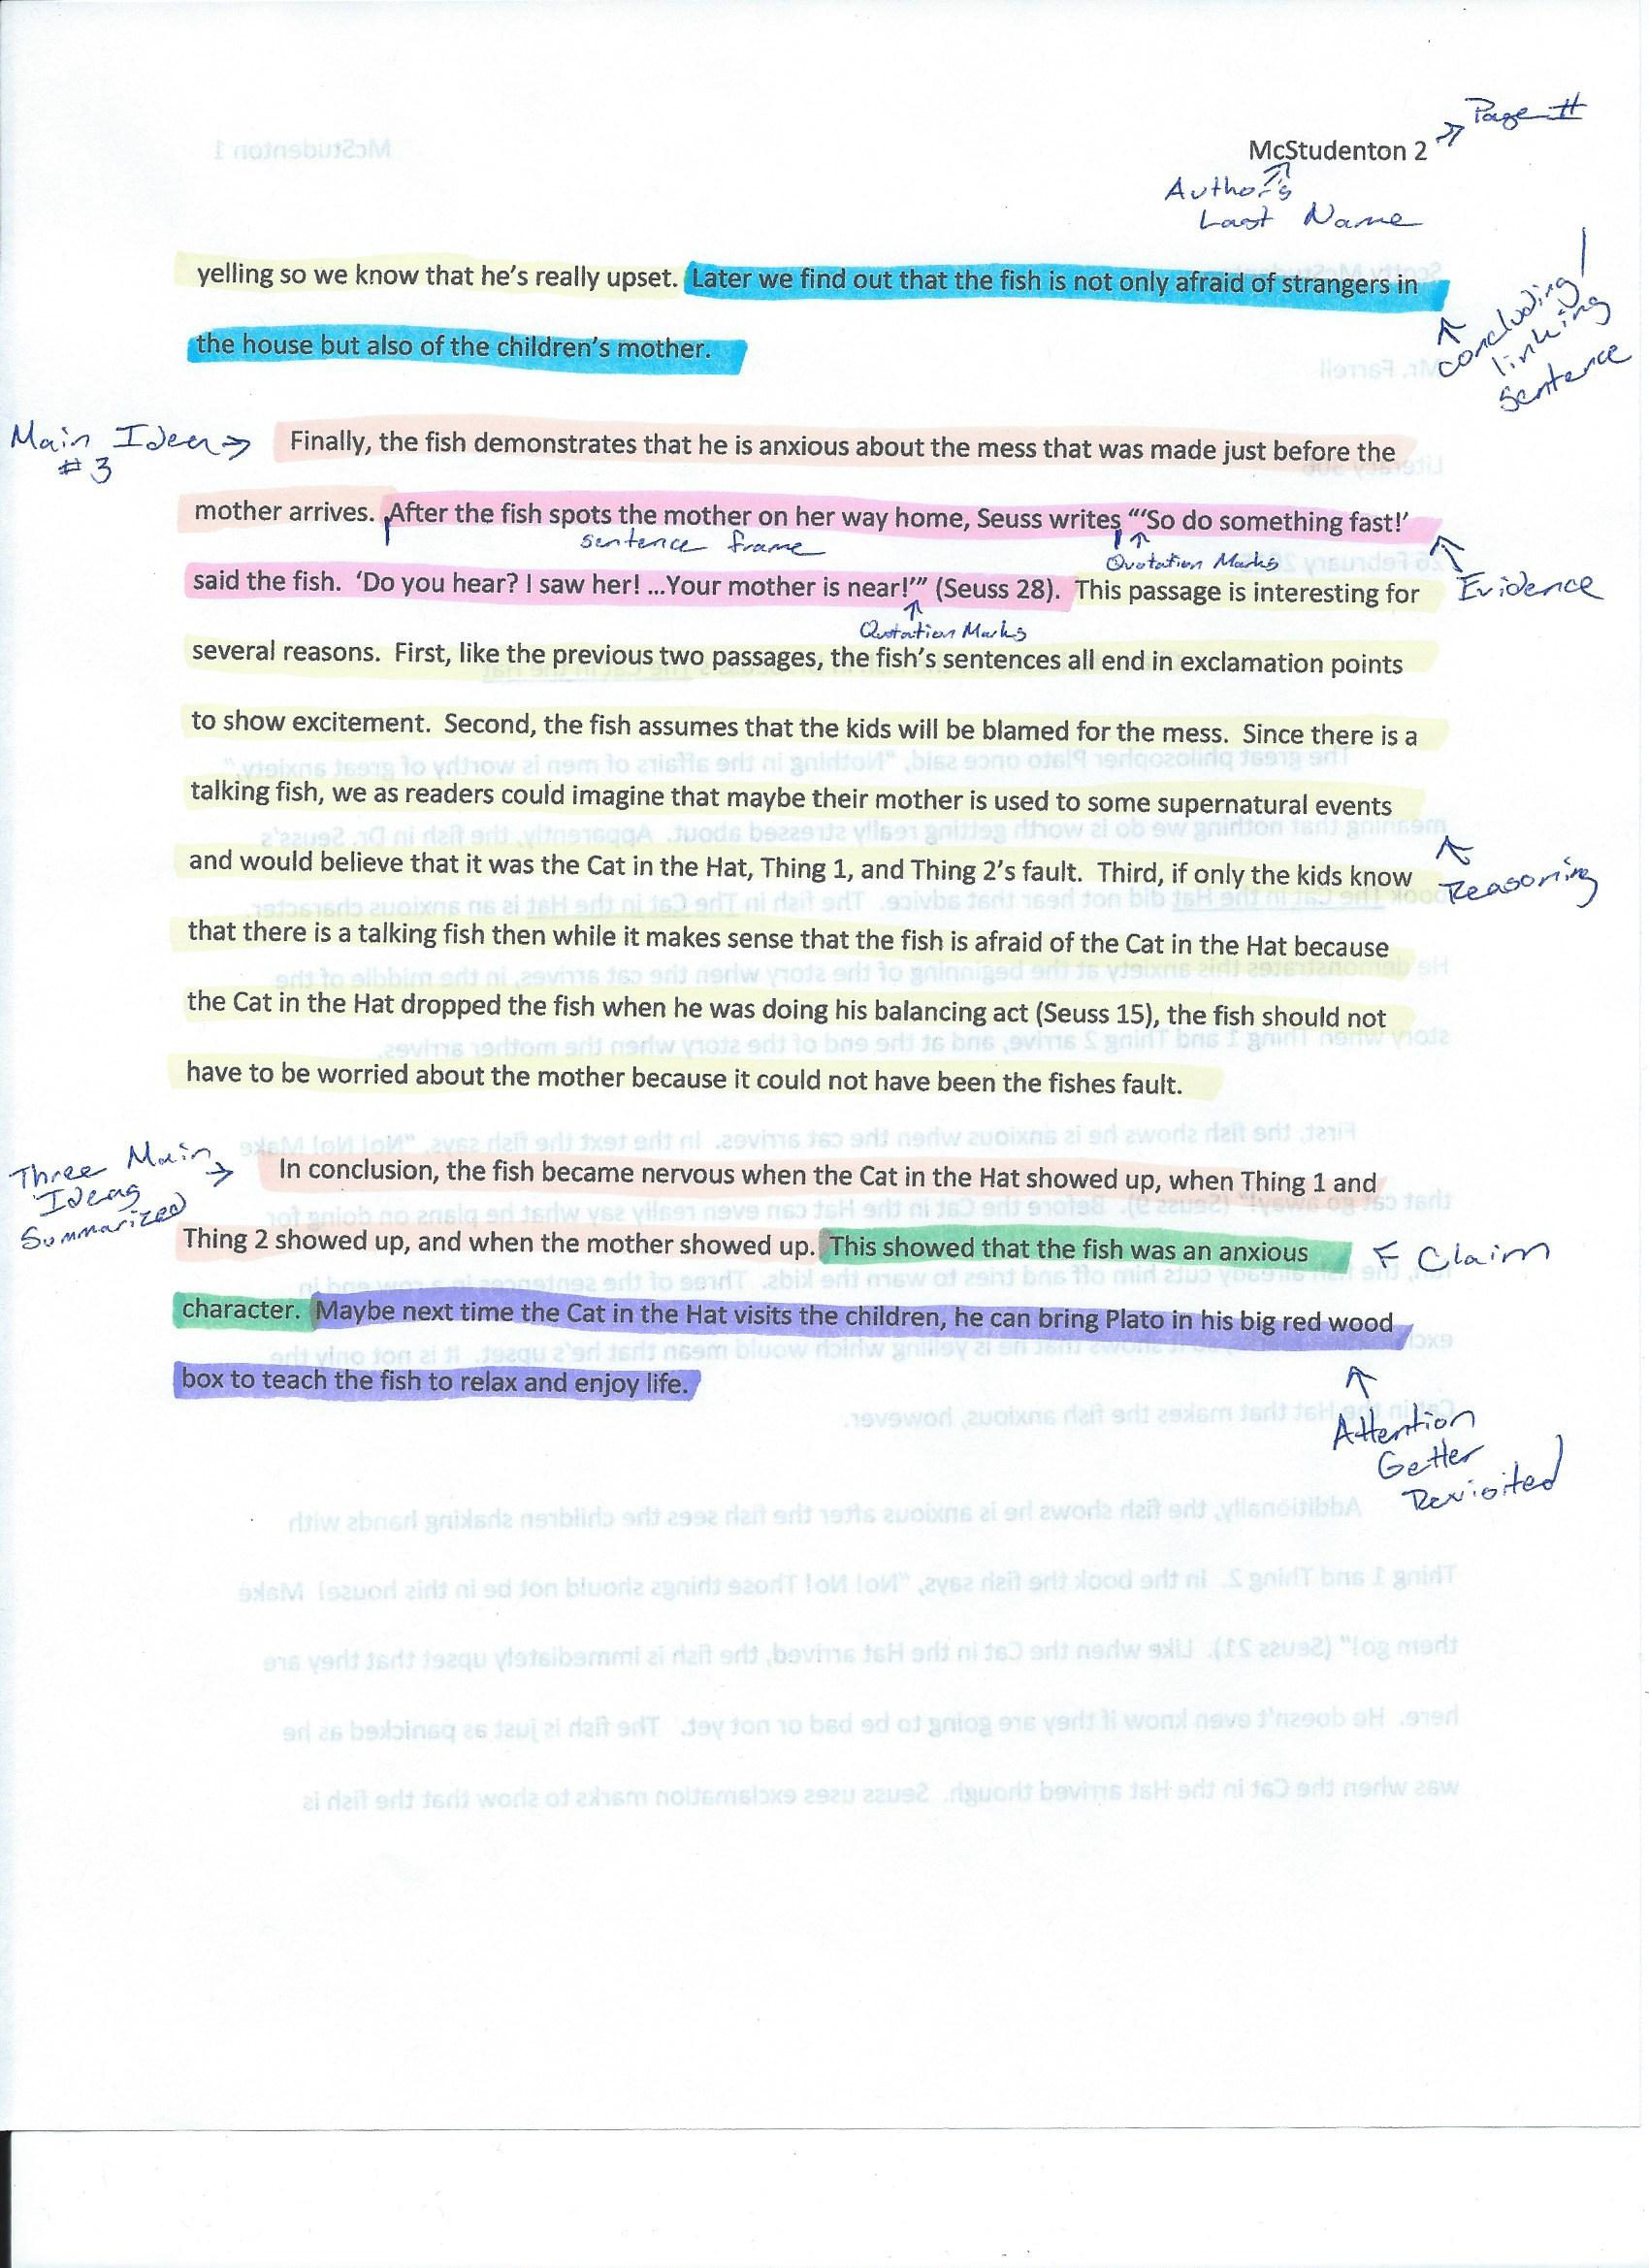 022 Essay Example Annotated Cat In The Hat Cerca Page 2 Of Argumentative Beautiful Conclusion Introduction Body And Full